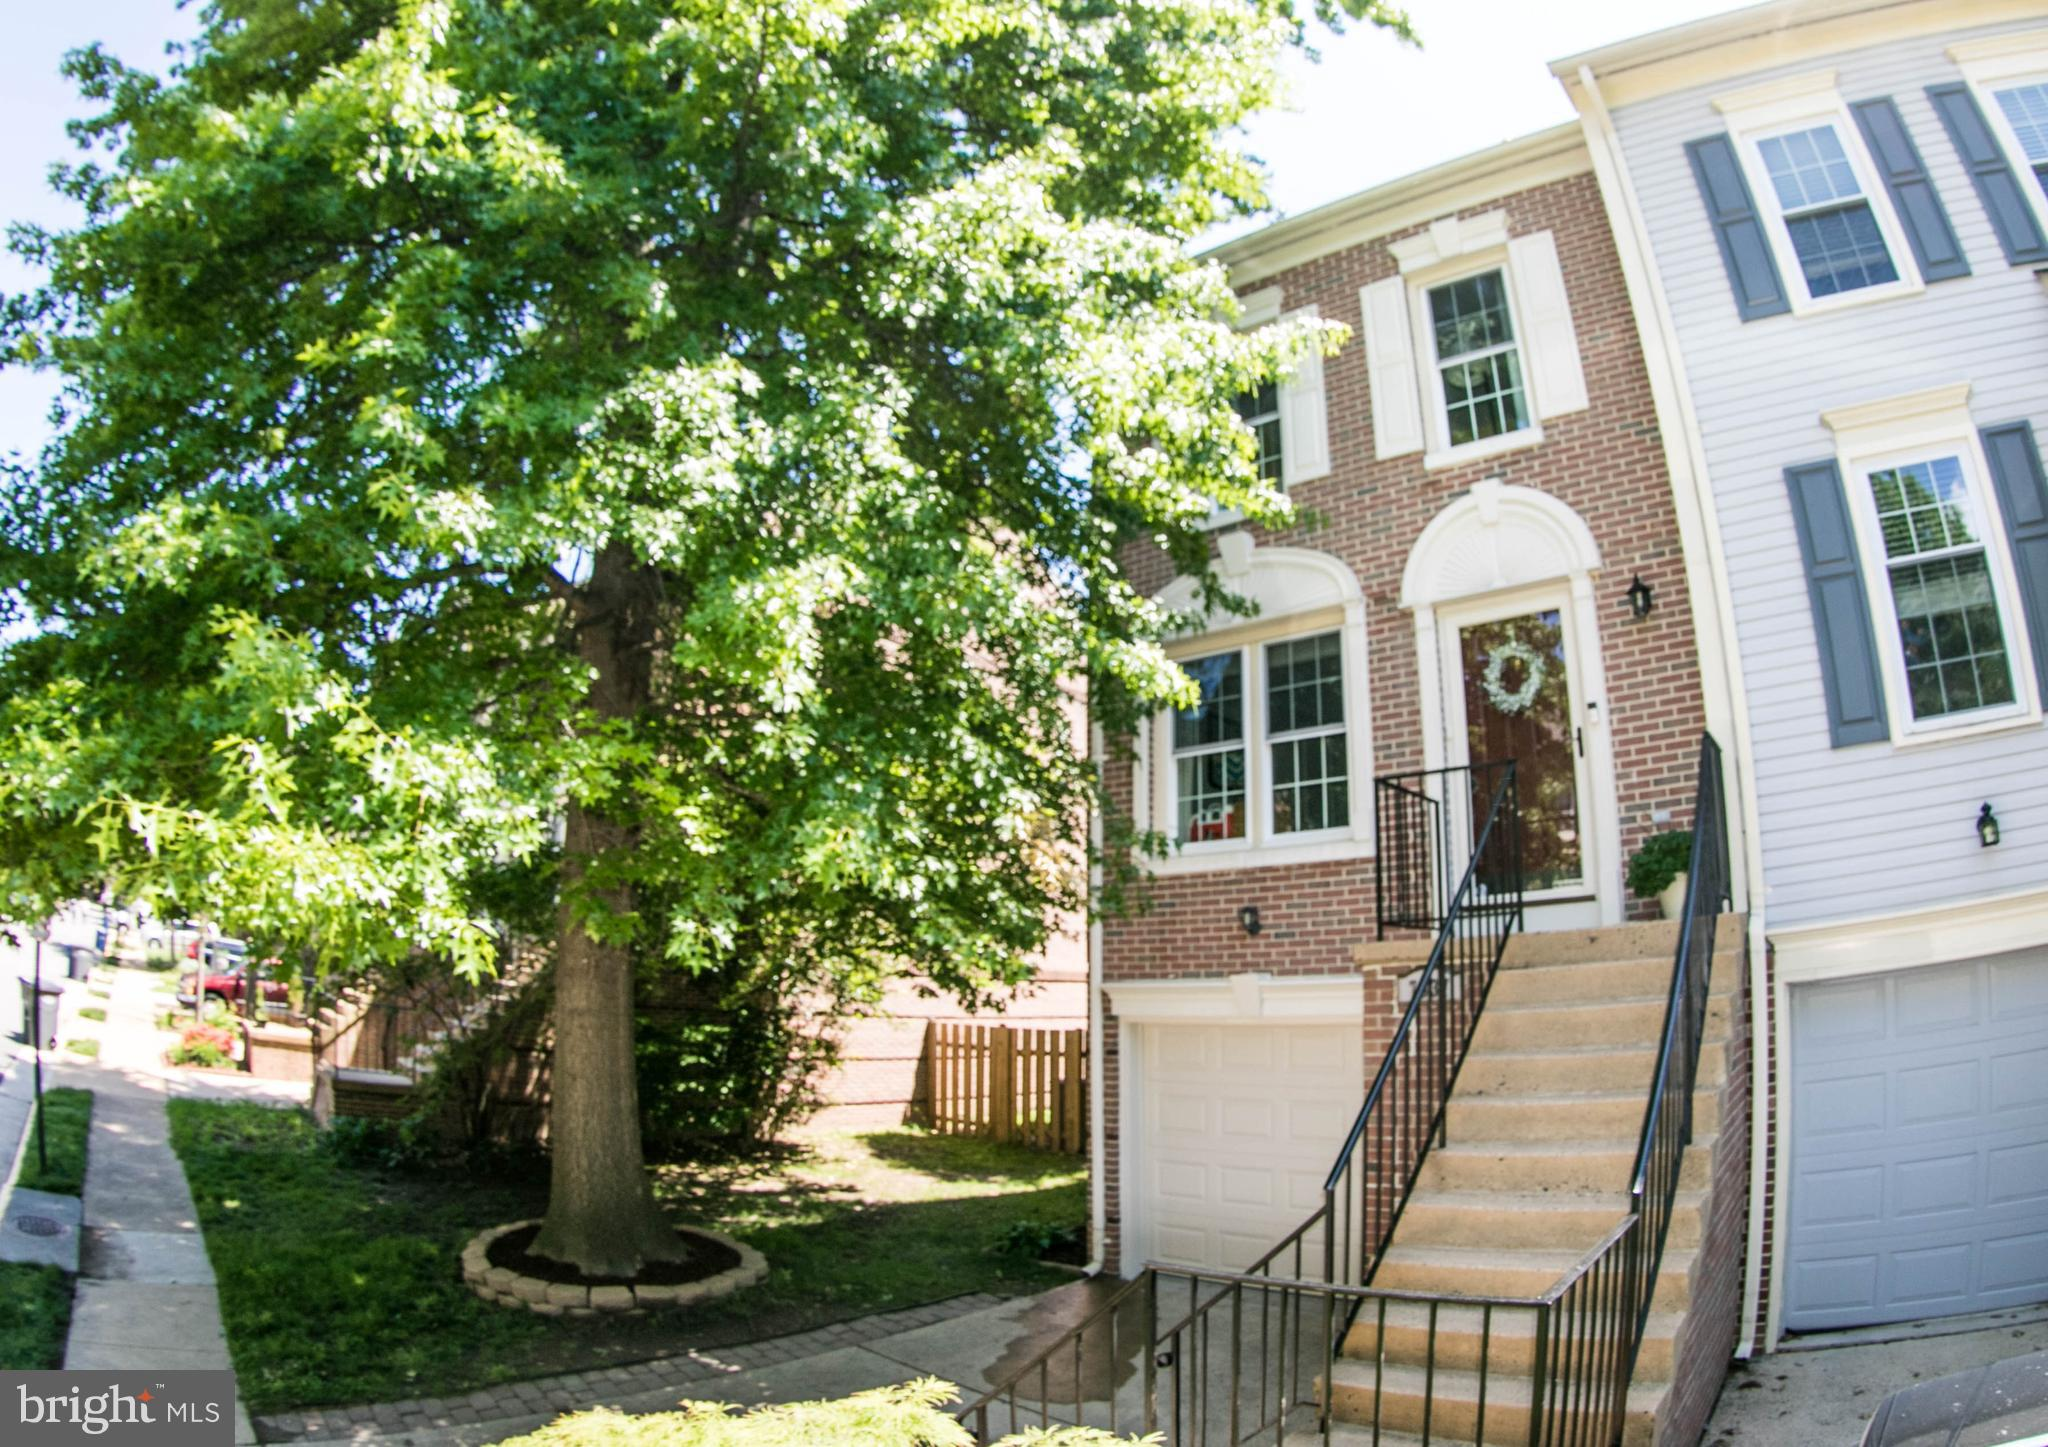 Beautiful Sunlit 4 level Brick Front End unit with amazing back yard.  Updated Kitchen and Master Bath room.  You'll love the deck just off the kitchen for grilling out and the prive fully fenced back yard.  Inside you will find 3 spacious bedrooms and basement space with tiled flooring and walk out to back yard.  Windows replaced in 2015.  Convenient to both Fort Belvoir and Old Town Alexandria, close to Shopping & Huntington Metro.